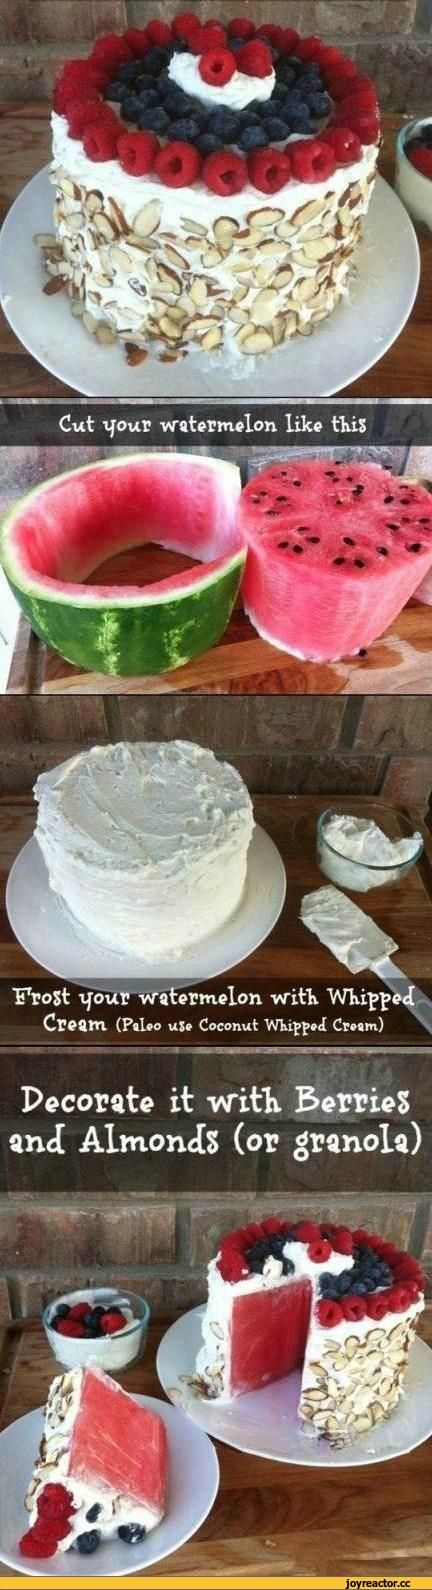 Yum can't wait to try this NO BAKE WATERMELON CAKE during summertime !